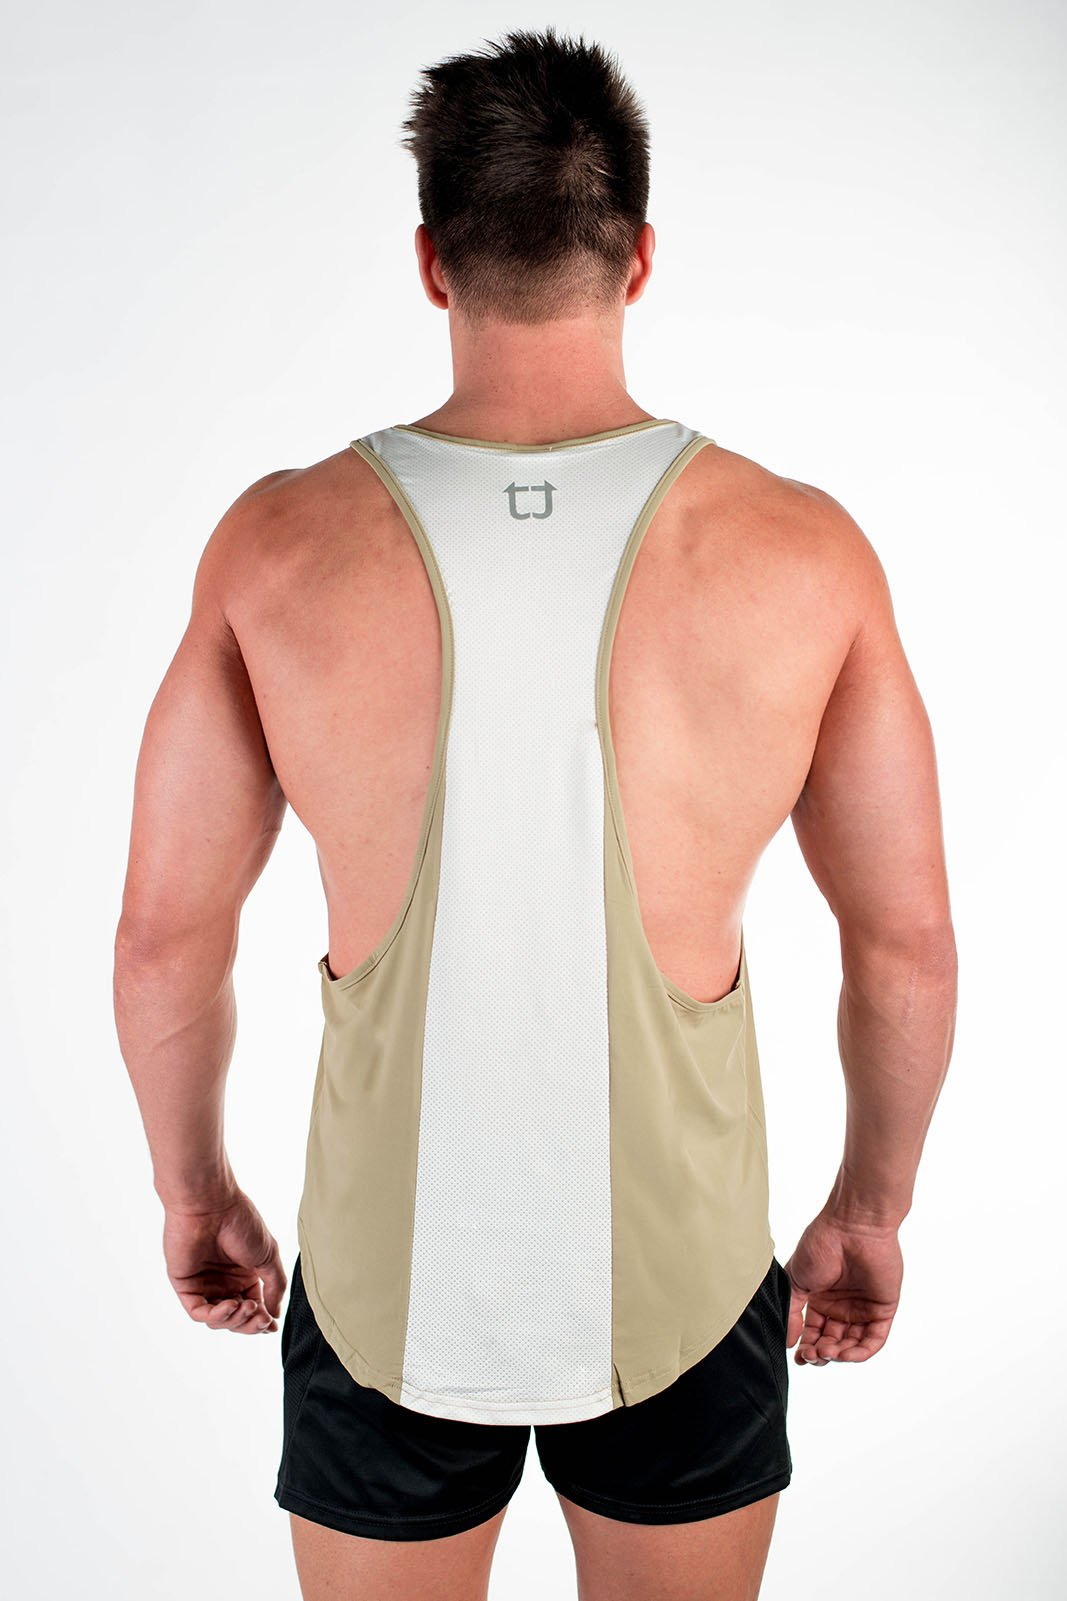 Twotags Purpose Stringer - Grey Olive